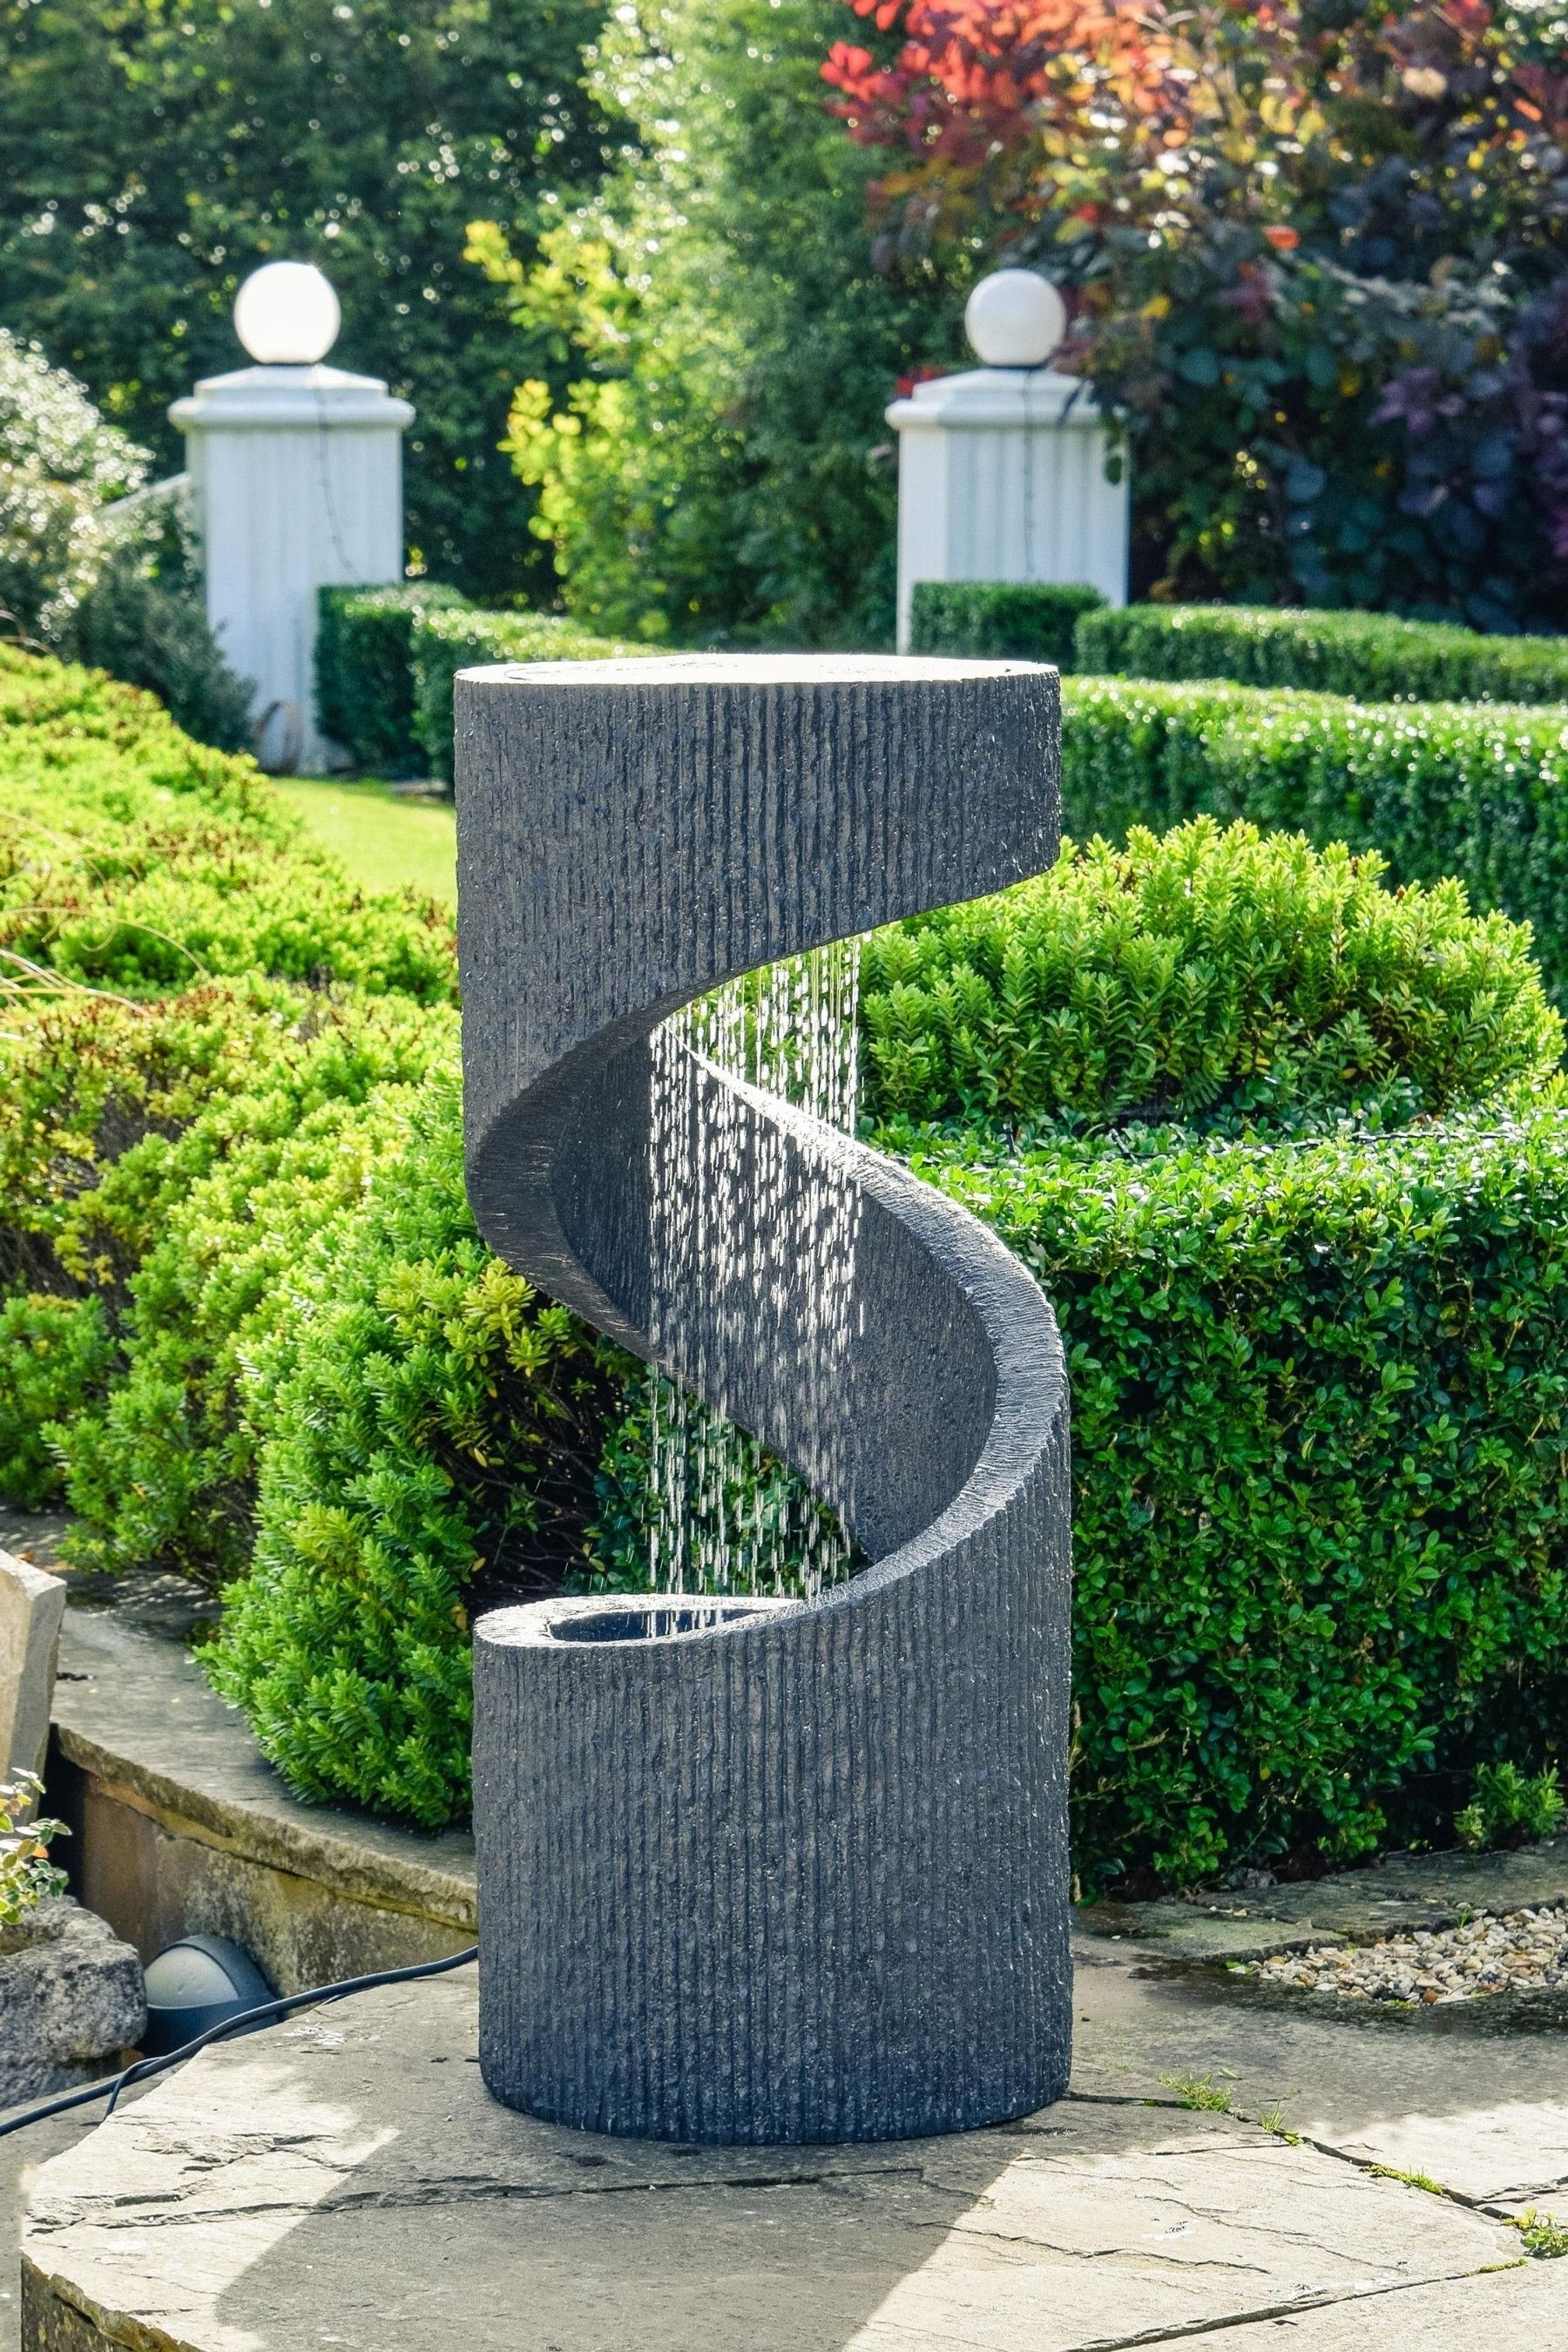 Buy Outdoor Spiral Water Feature By Ivyline From The Next Uk Online Shop Water Fountains Outdoor Water Features In The Garden Garden Water Feature Outdoor contemporary water feature by ivyline